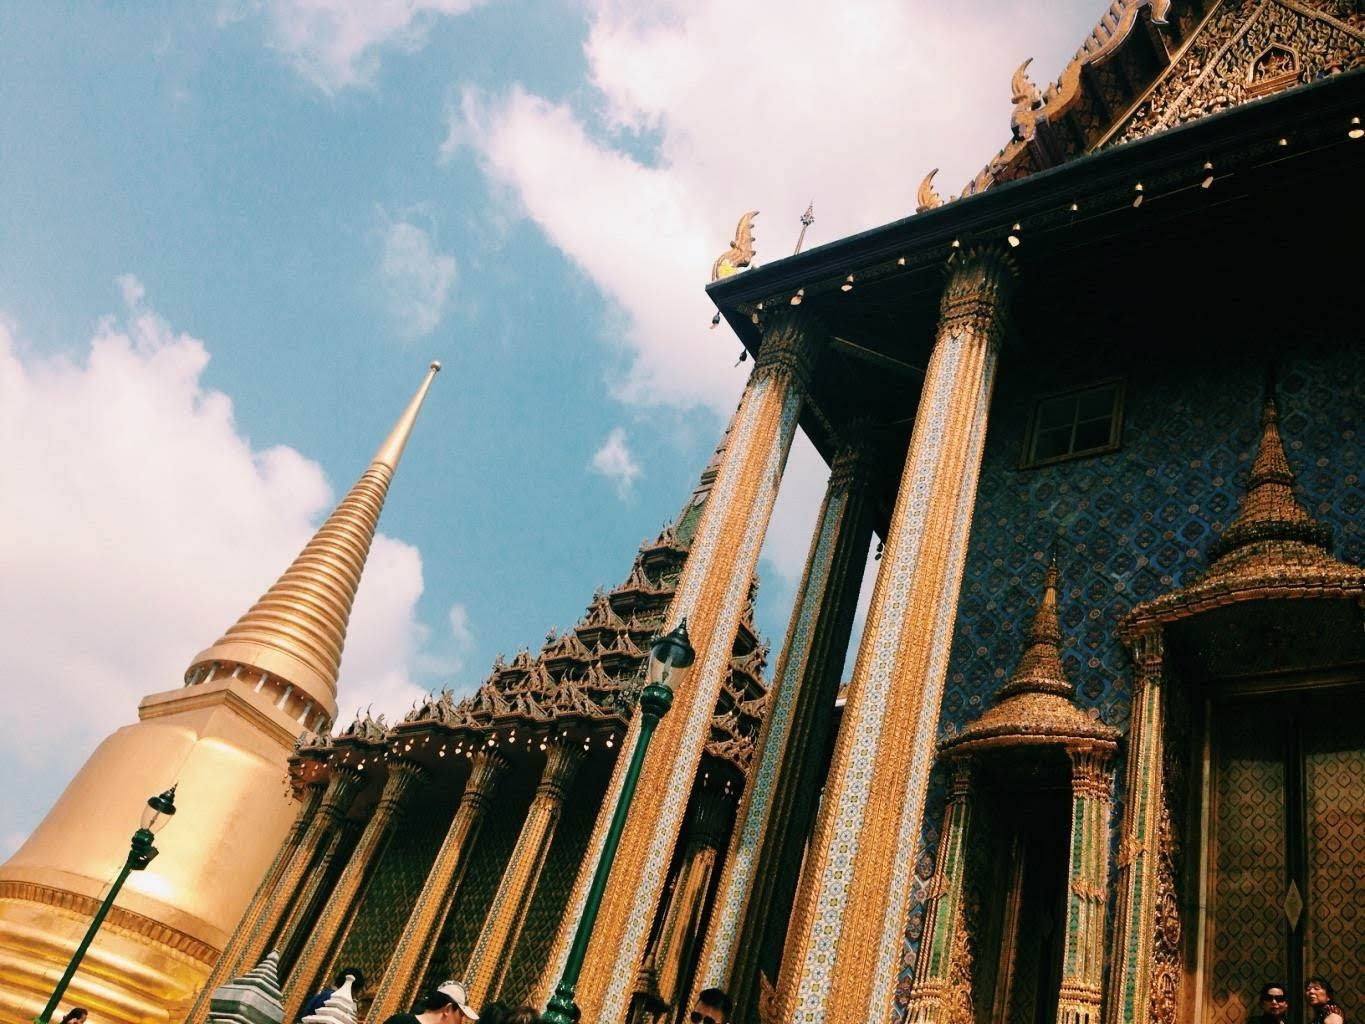 Thai temples in bangkok are a good, budget-friendly option